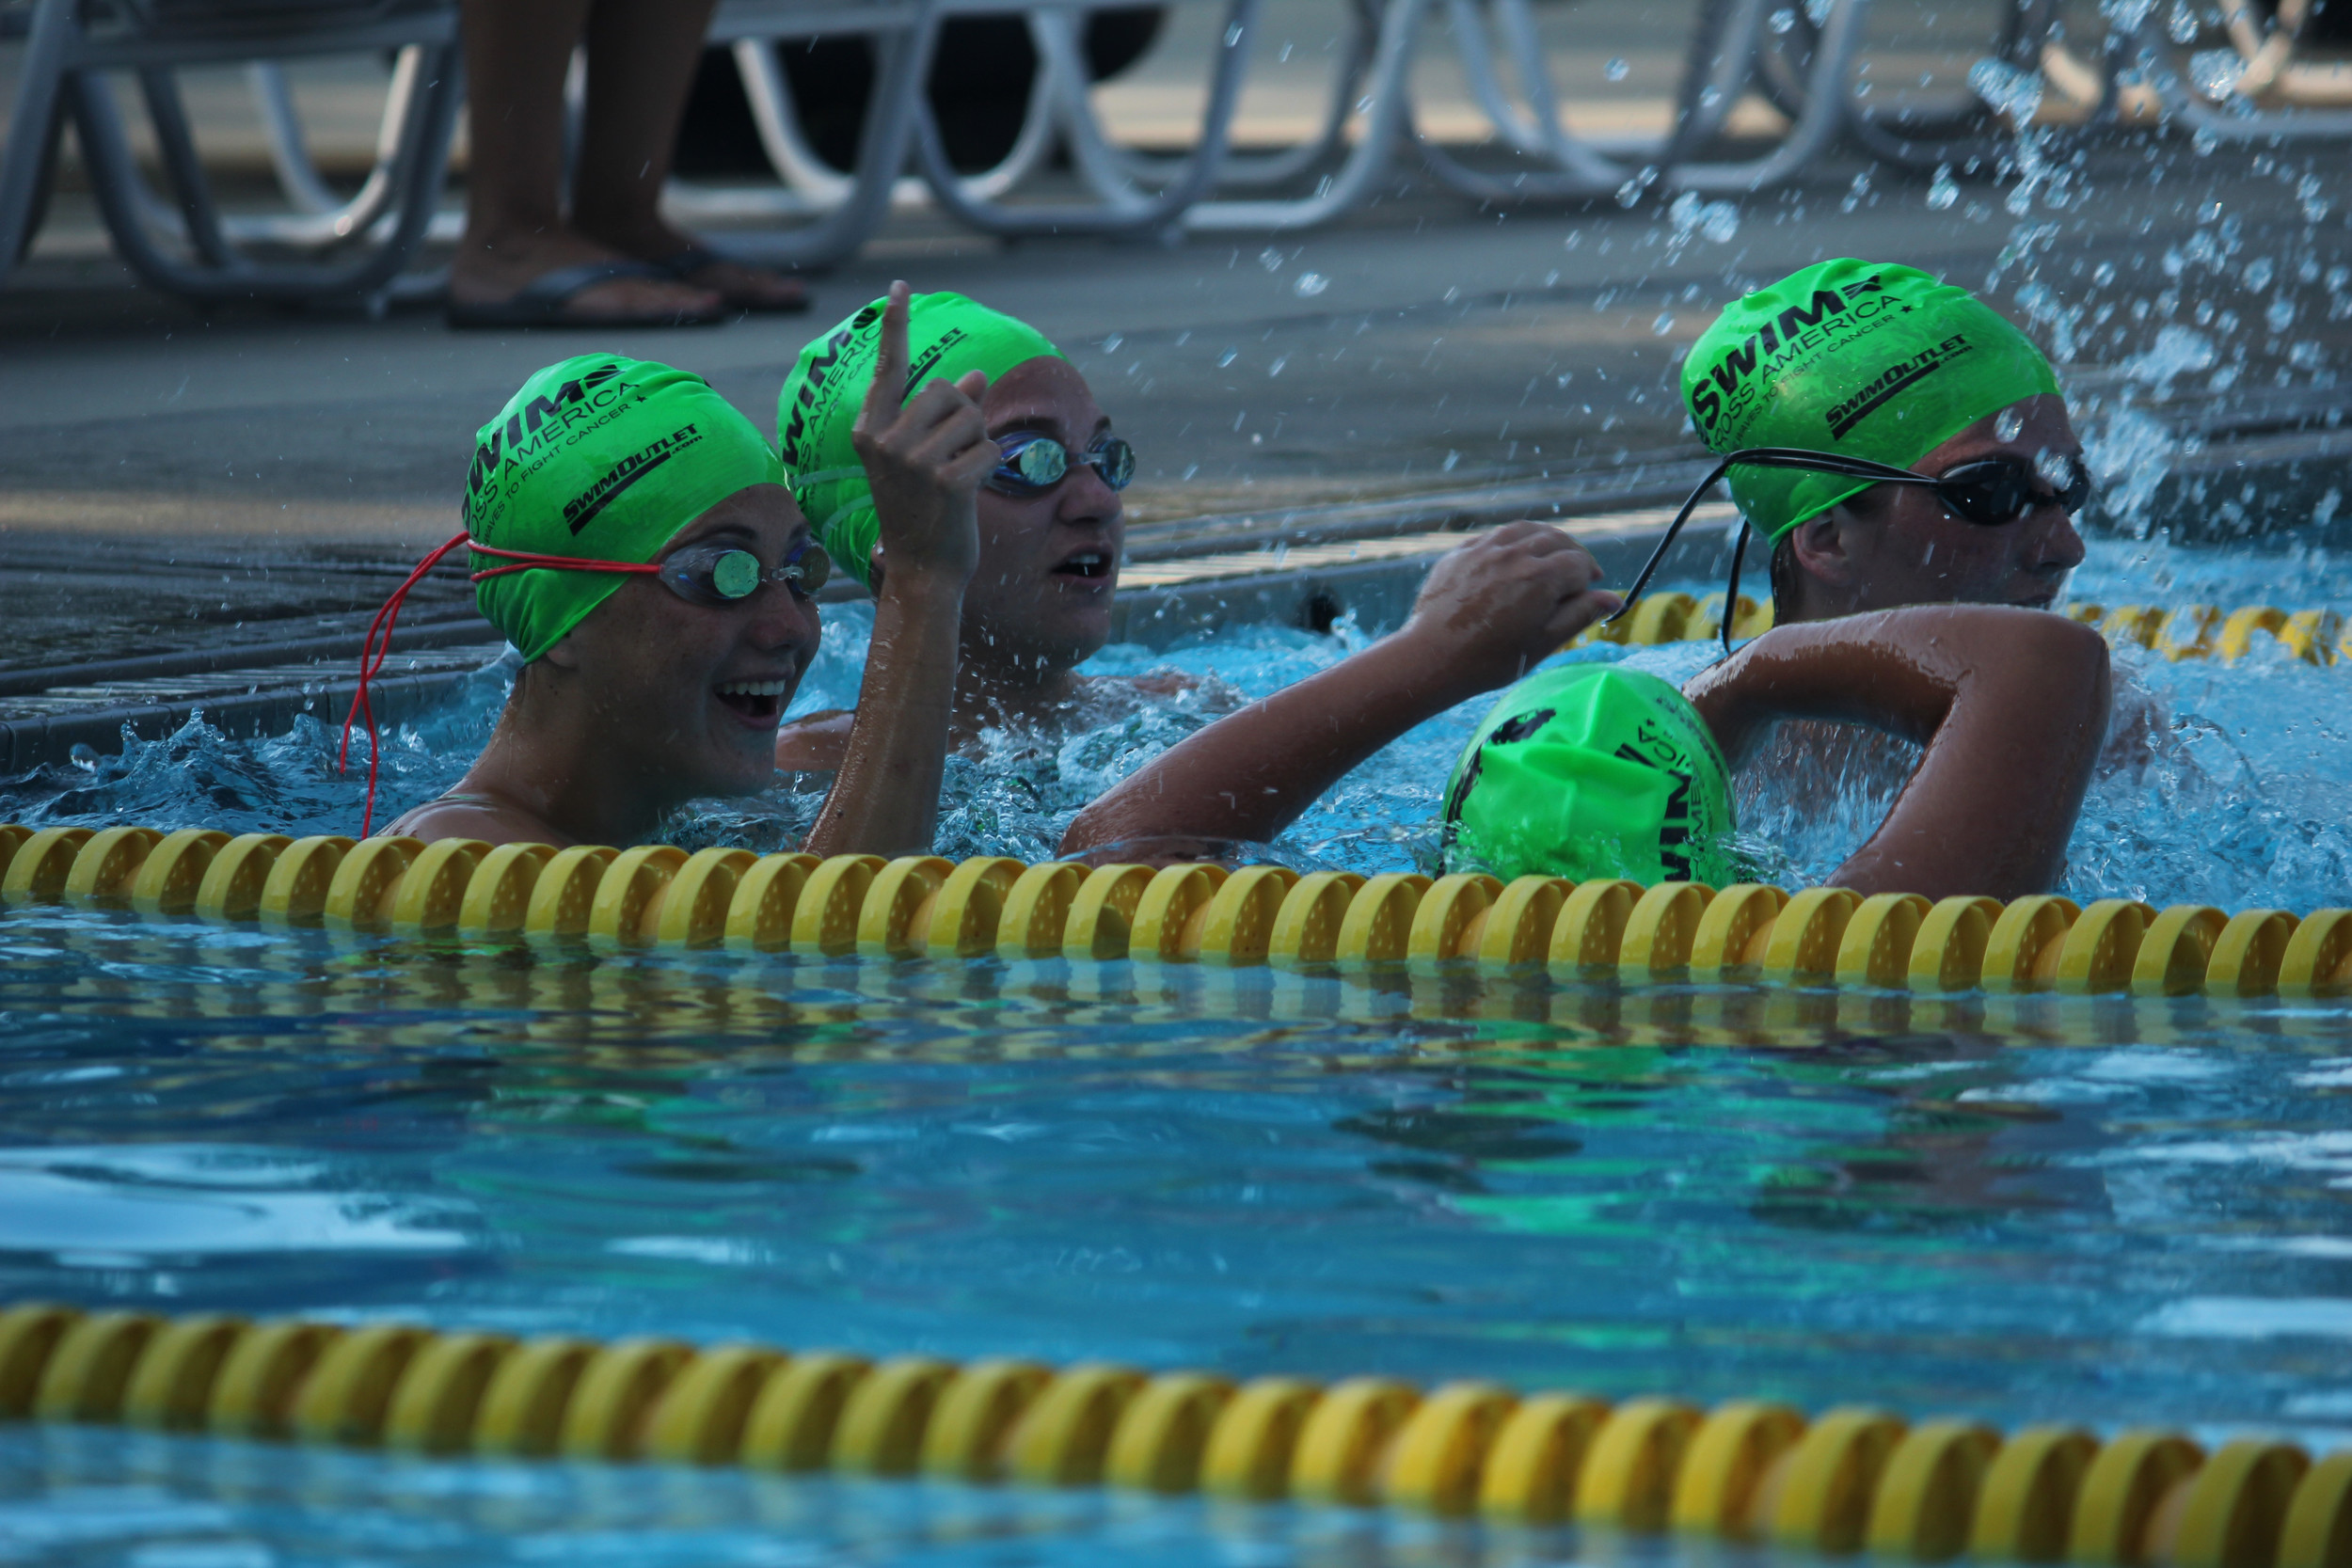 Members from the Lynbrook High School varsity swim team cheered each other on as they took turns swimming laps.